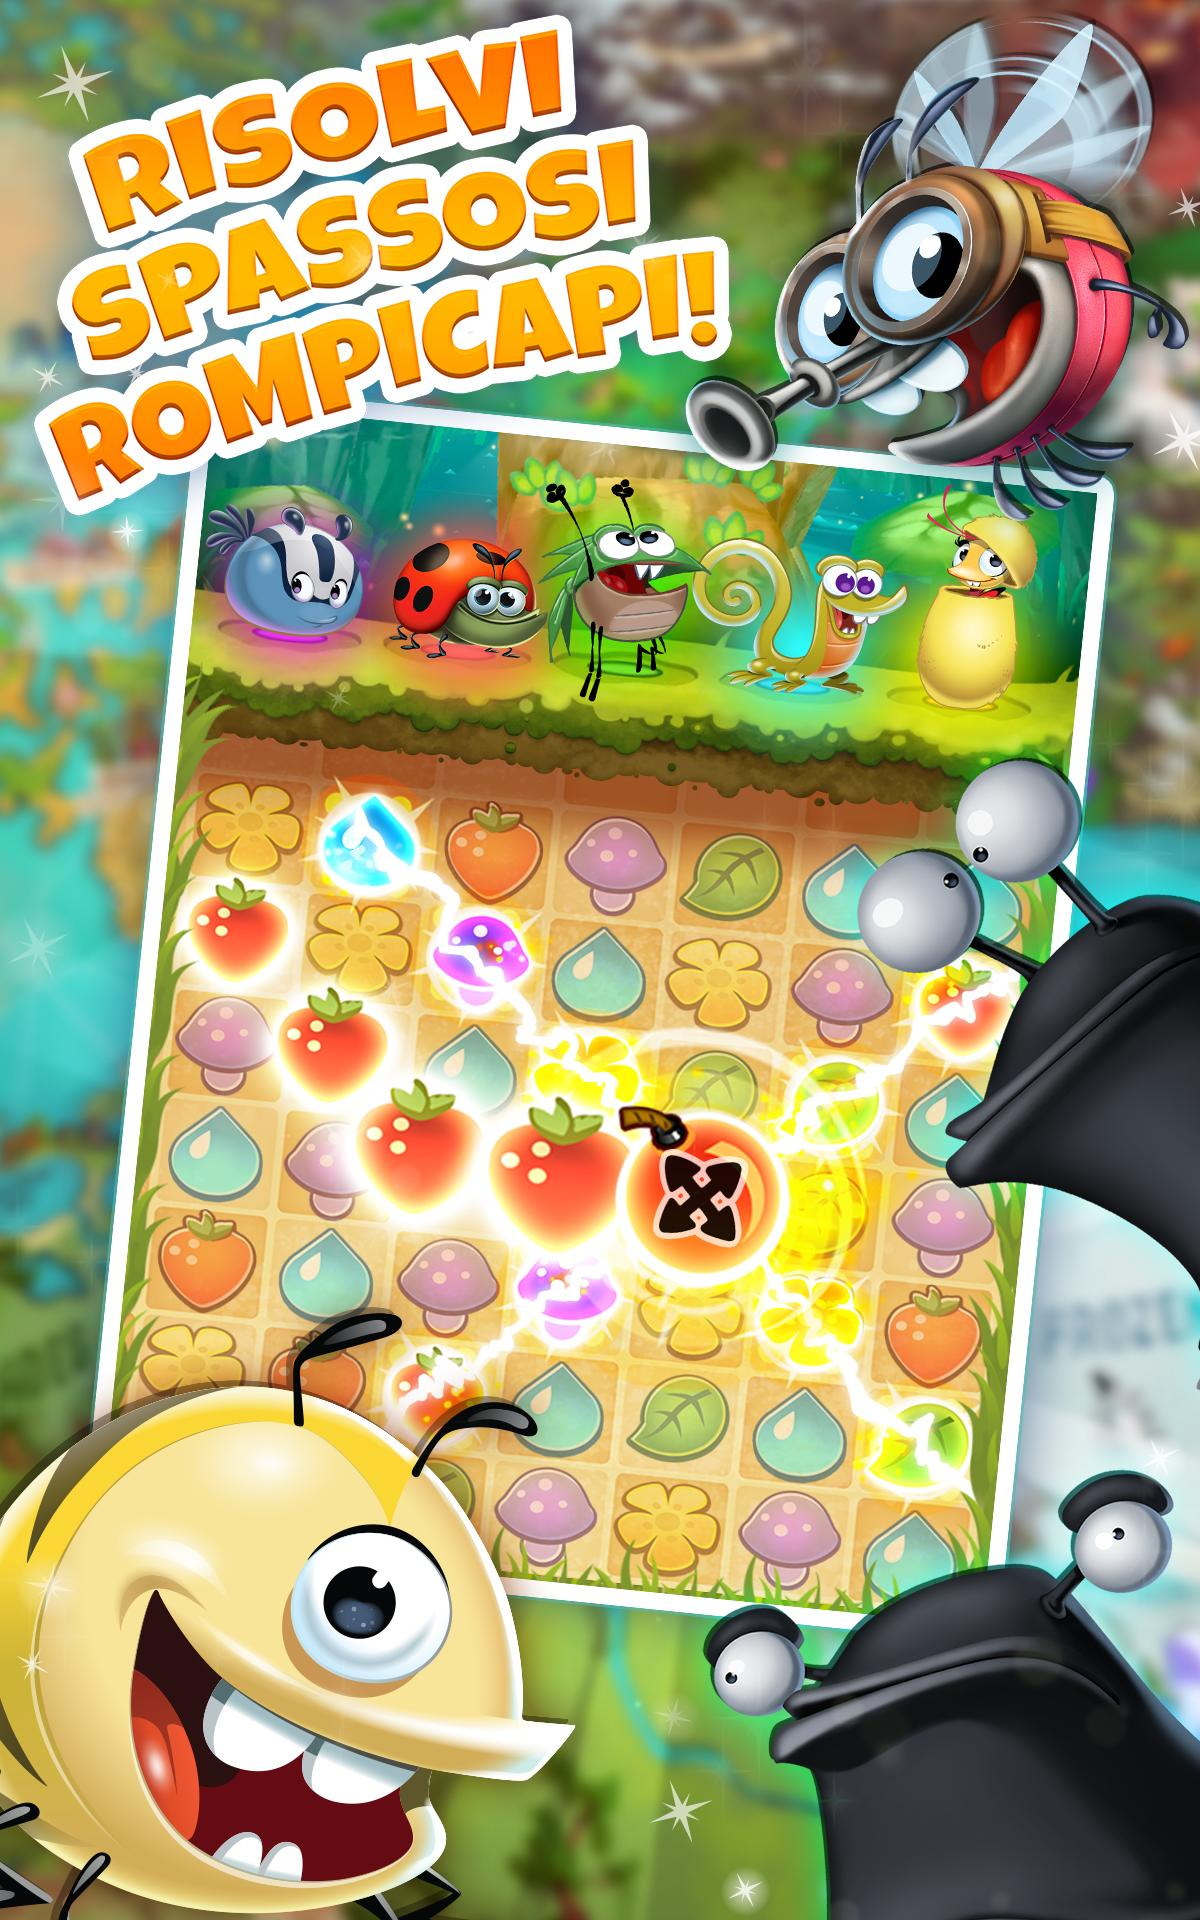 Best Fiends for Android - APK Download